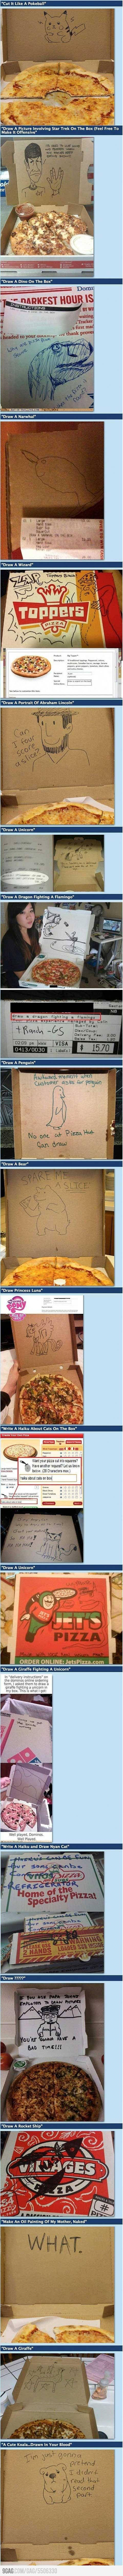 Extra requests with pizza orders means awesome drawings done by witty employees. This is so amazing, I NEED to do this